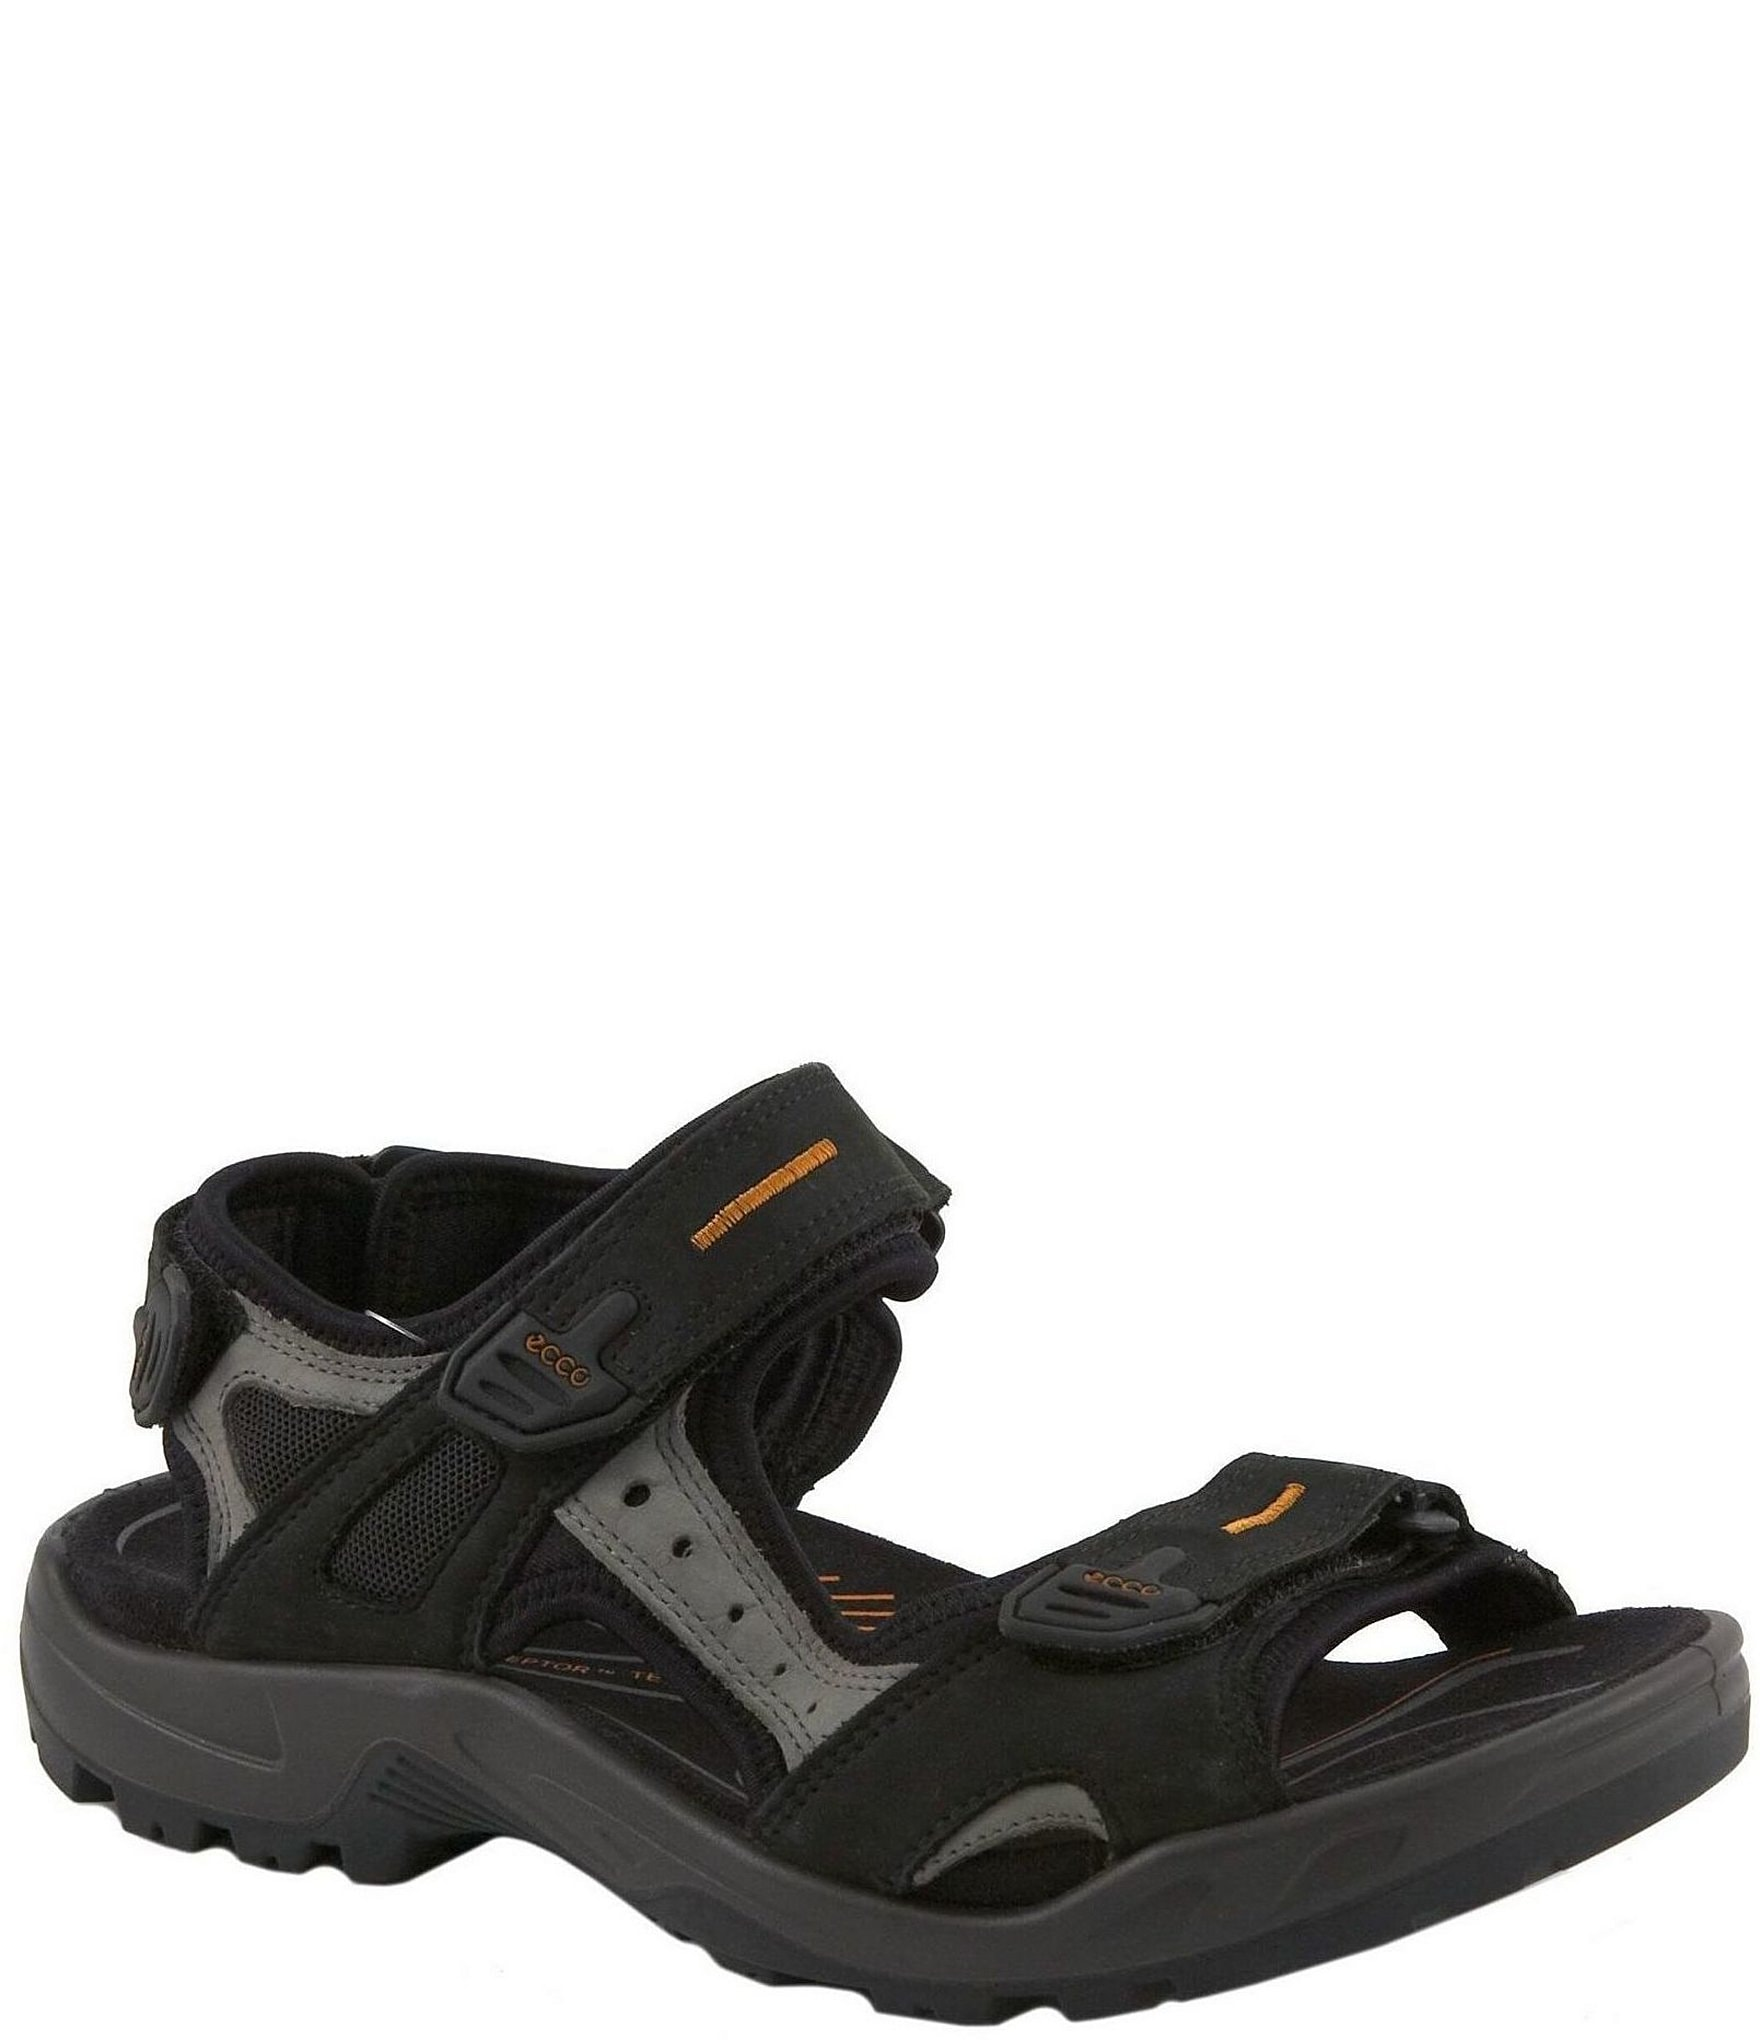 3321e00d5d9 ECCO Men s Yucatan Sandals